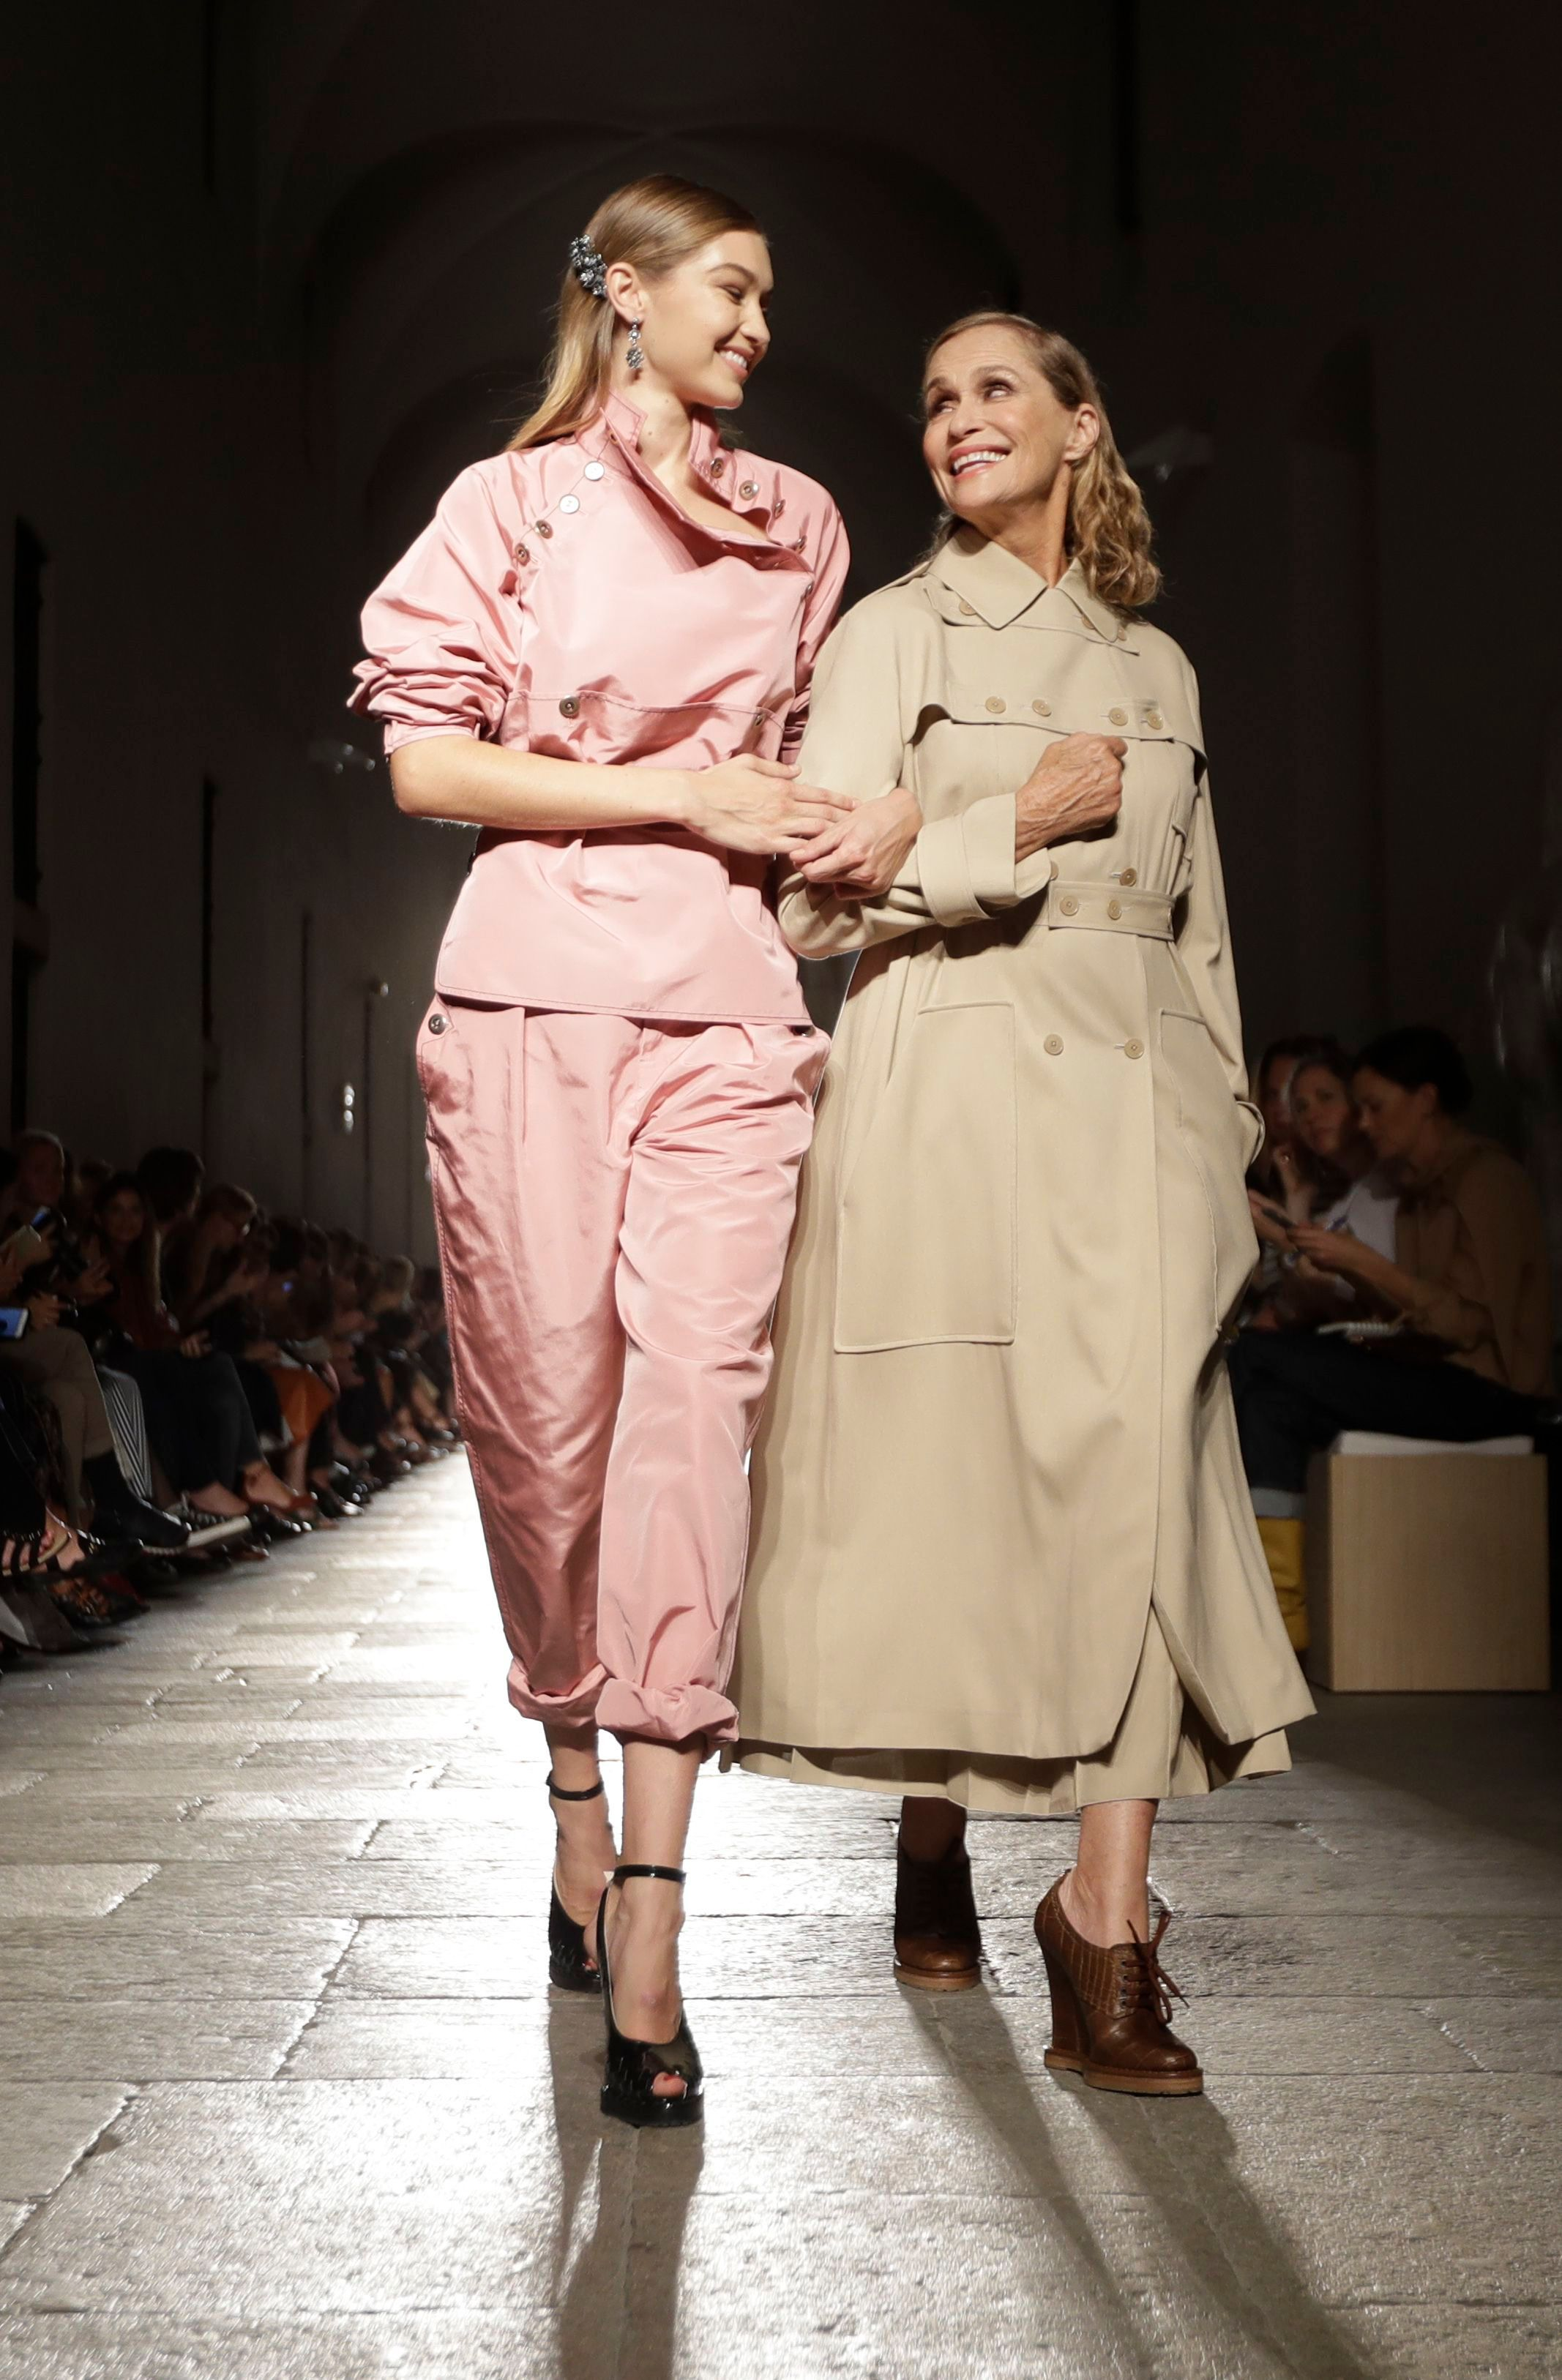 Model Gigi Hadid, left, is flanked by model and actress Lauren Hutton as they take the catwalk for Bottega Veneta women's Spring-Summer 2017 collection, presented in Milan, ItalyBottega Veneta show, Spring Summer 2017, Milan Fashion Week, Italy - 24 Sep 2016